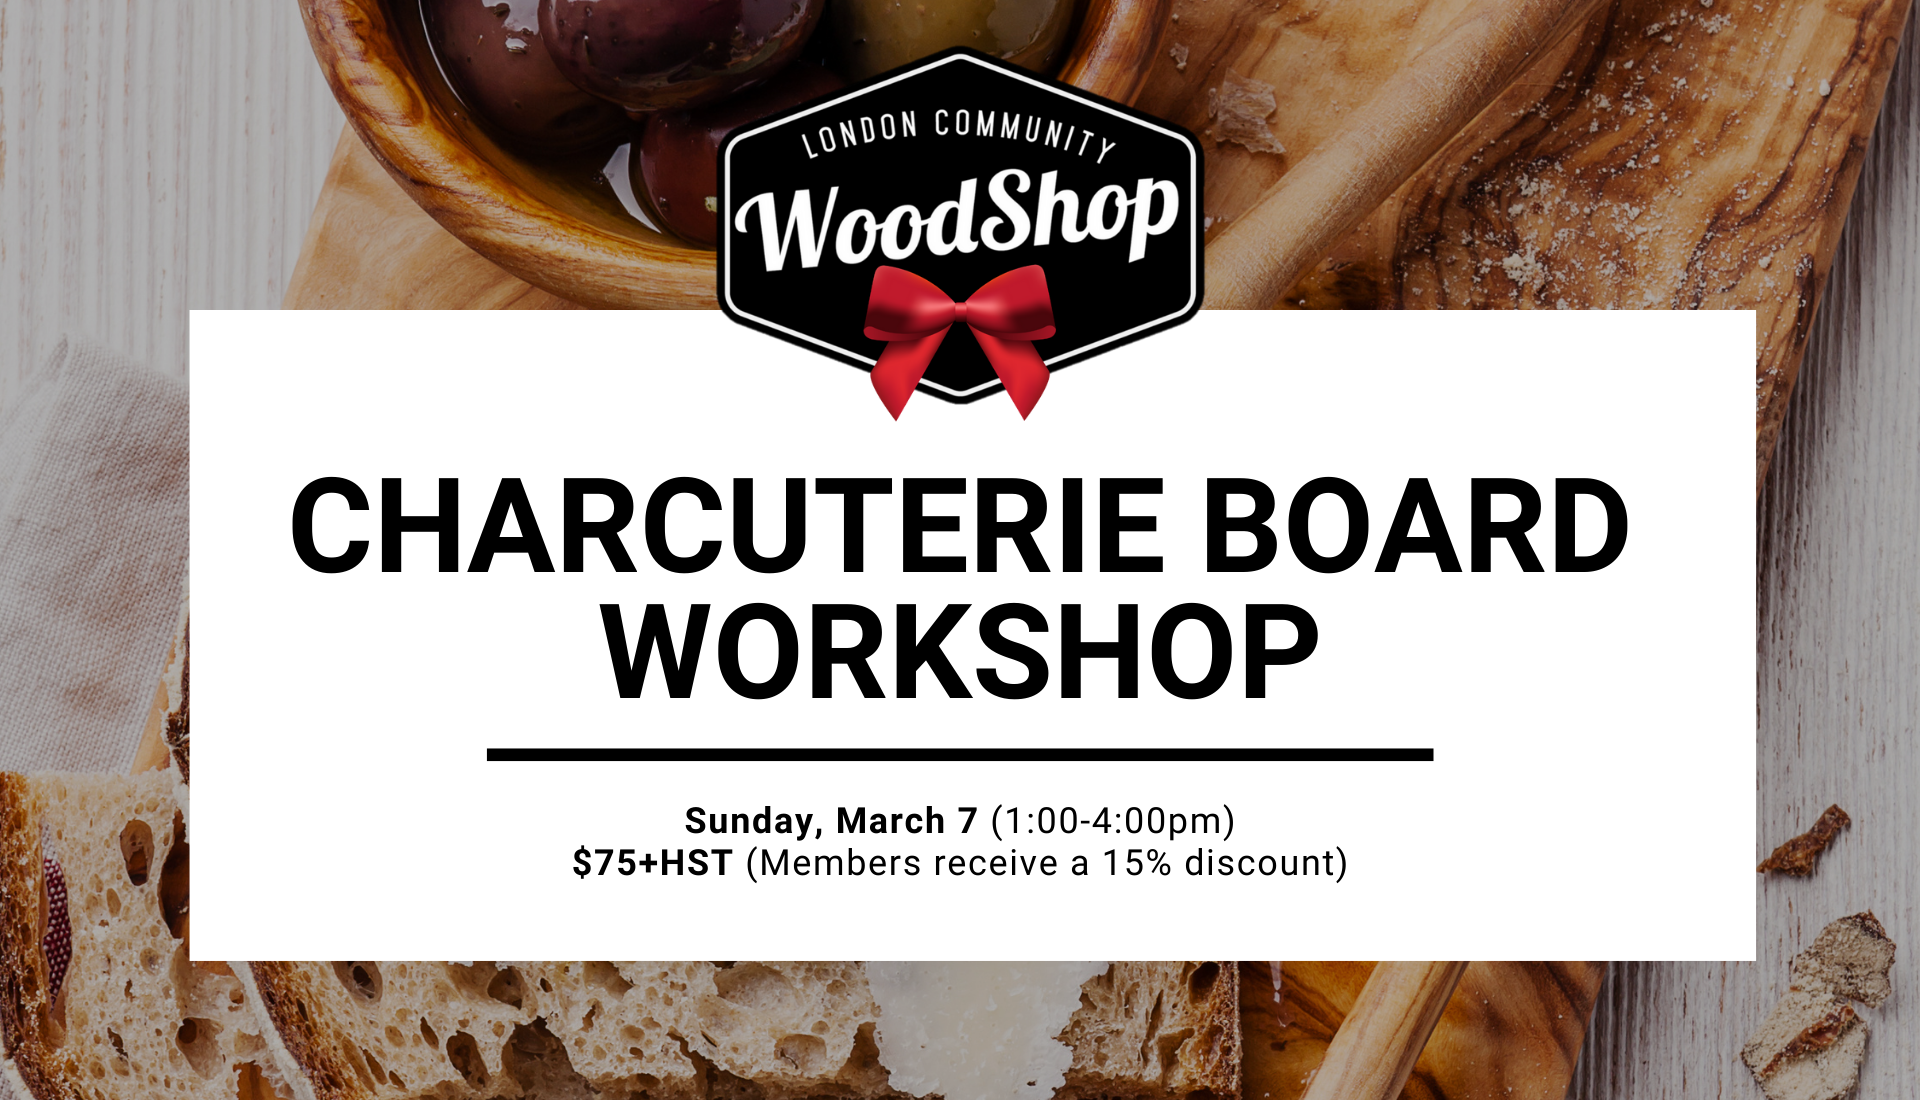 Charcuterie Board Workshop -March 7